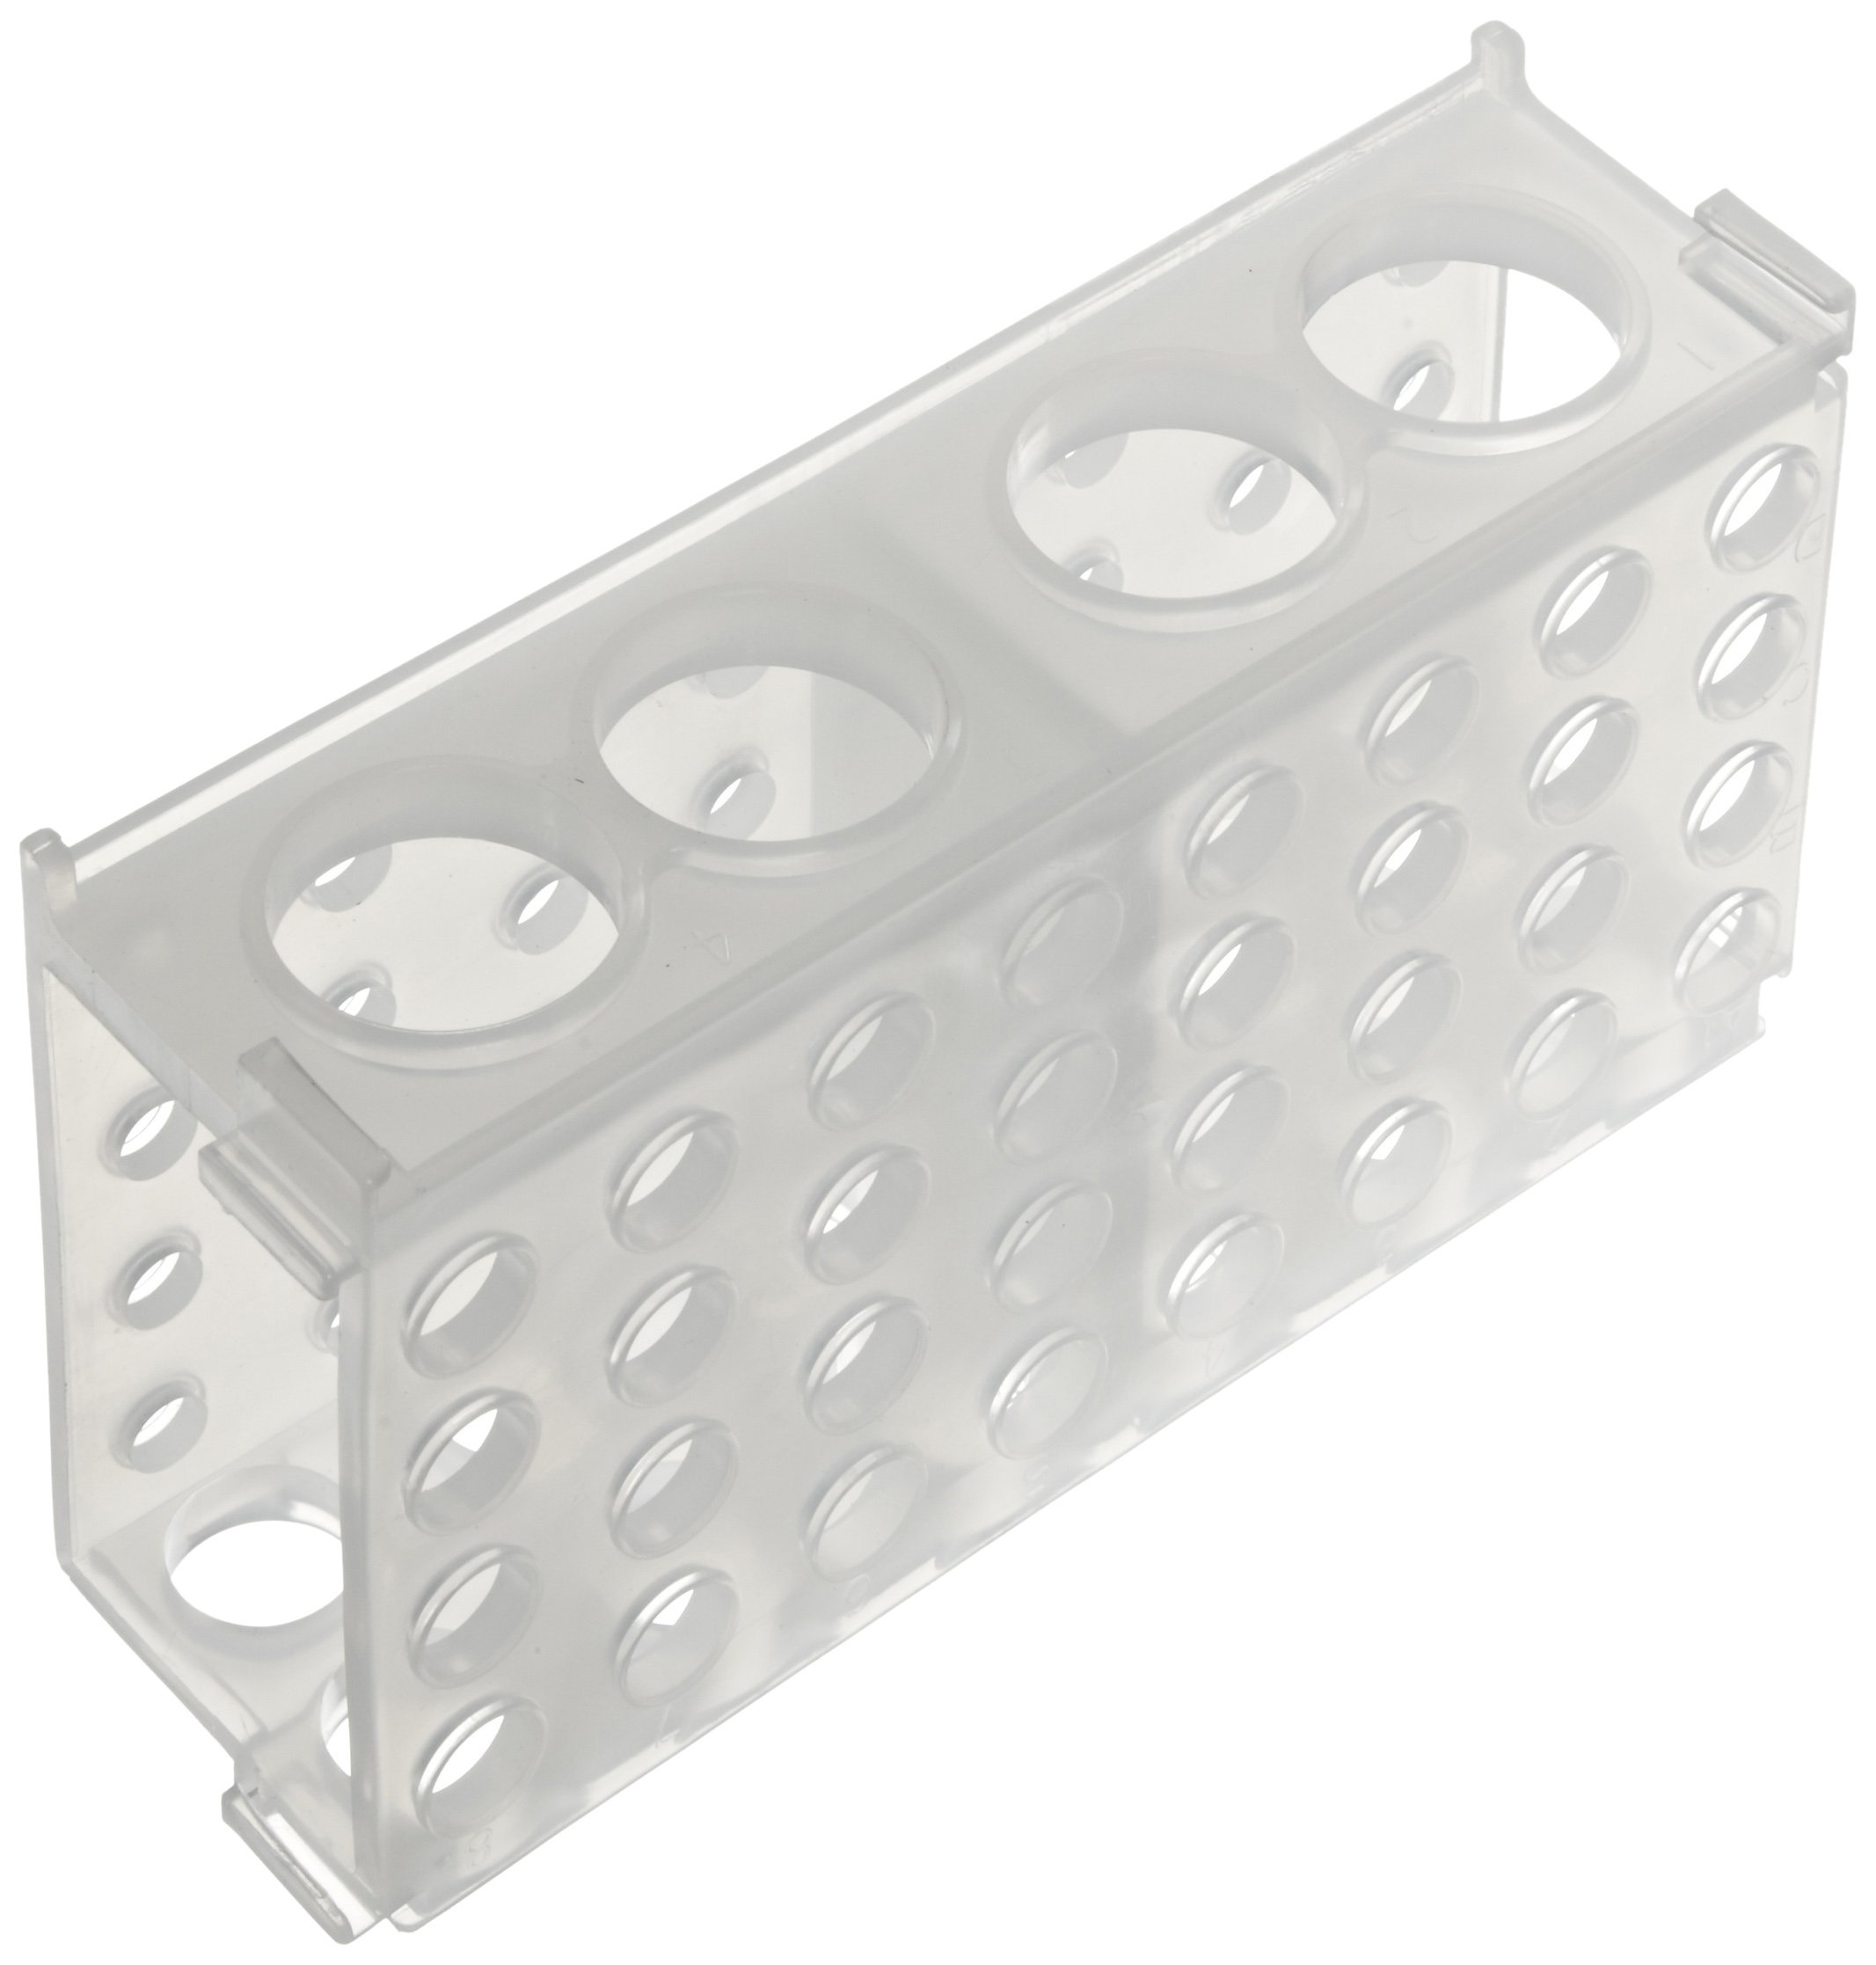 Heathrow Scientific HS29022A 4 Way Tube Rack, Polypropylene, Natural (Pack of 5)